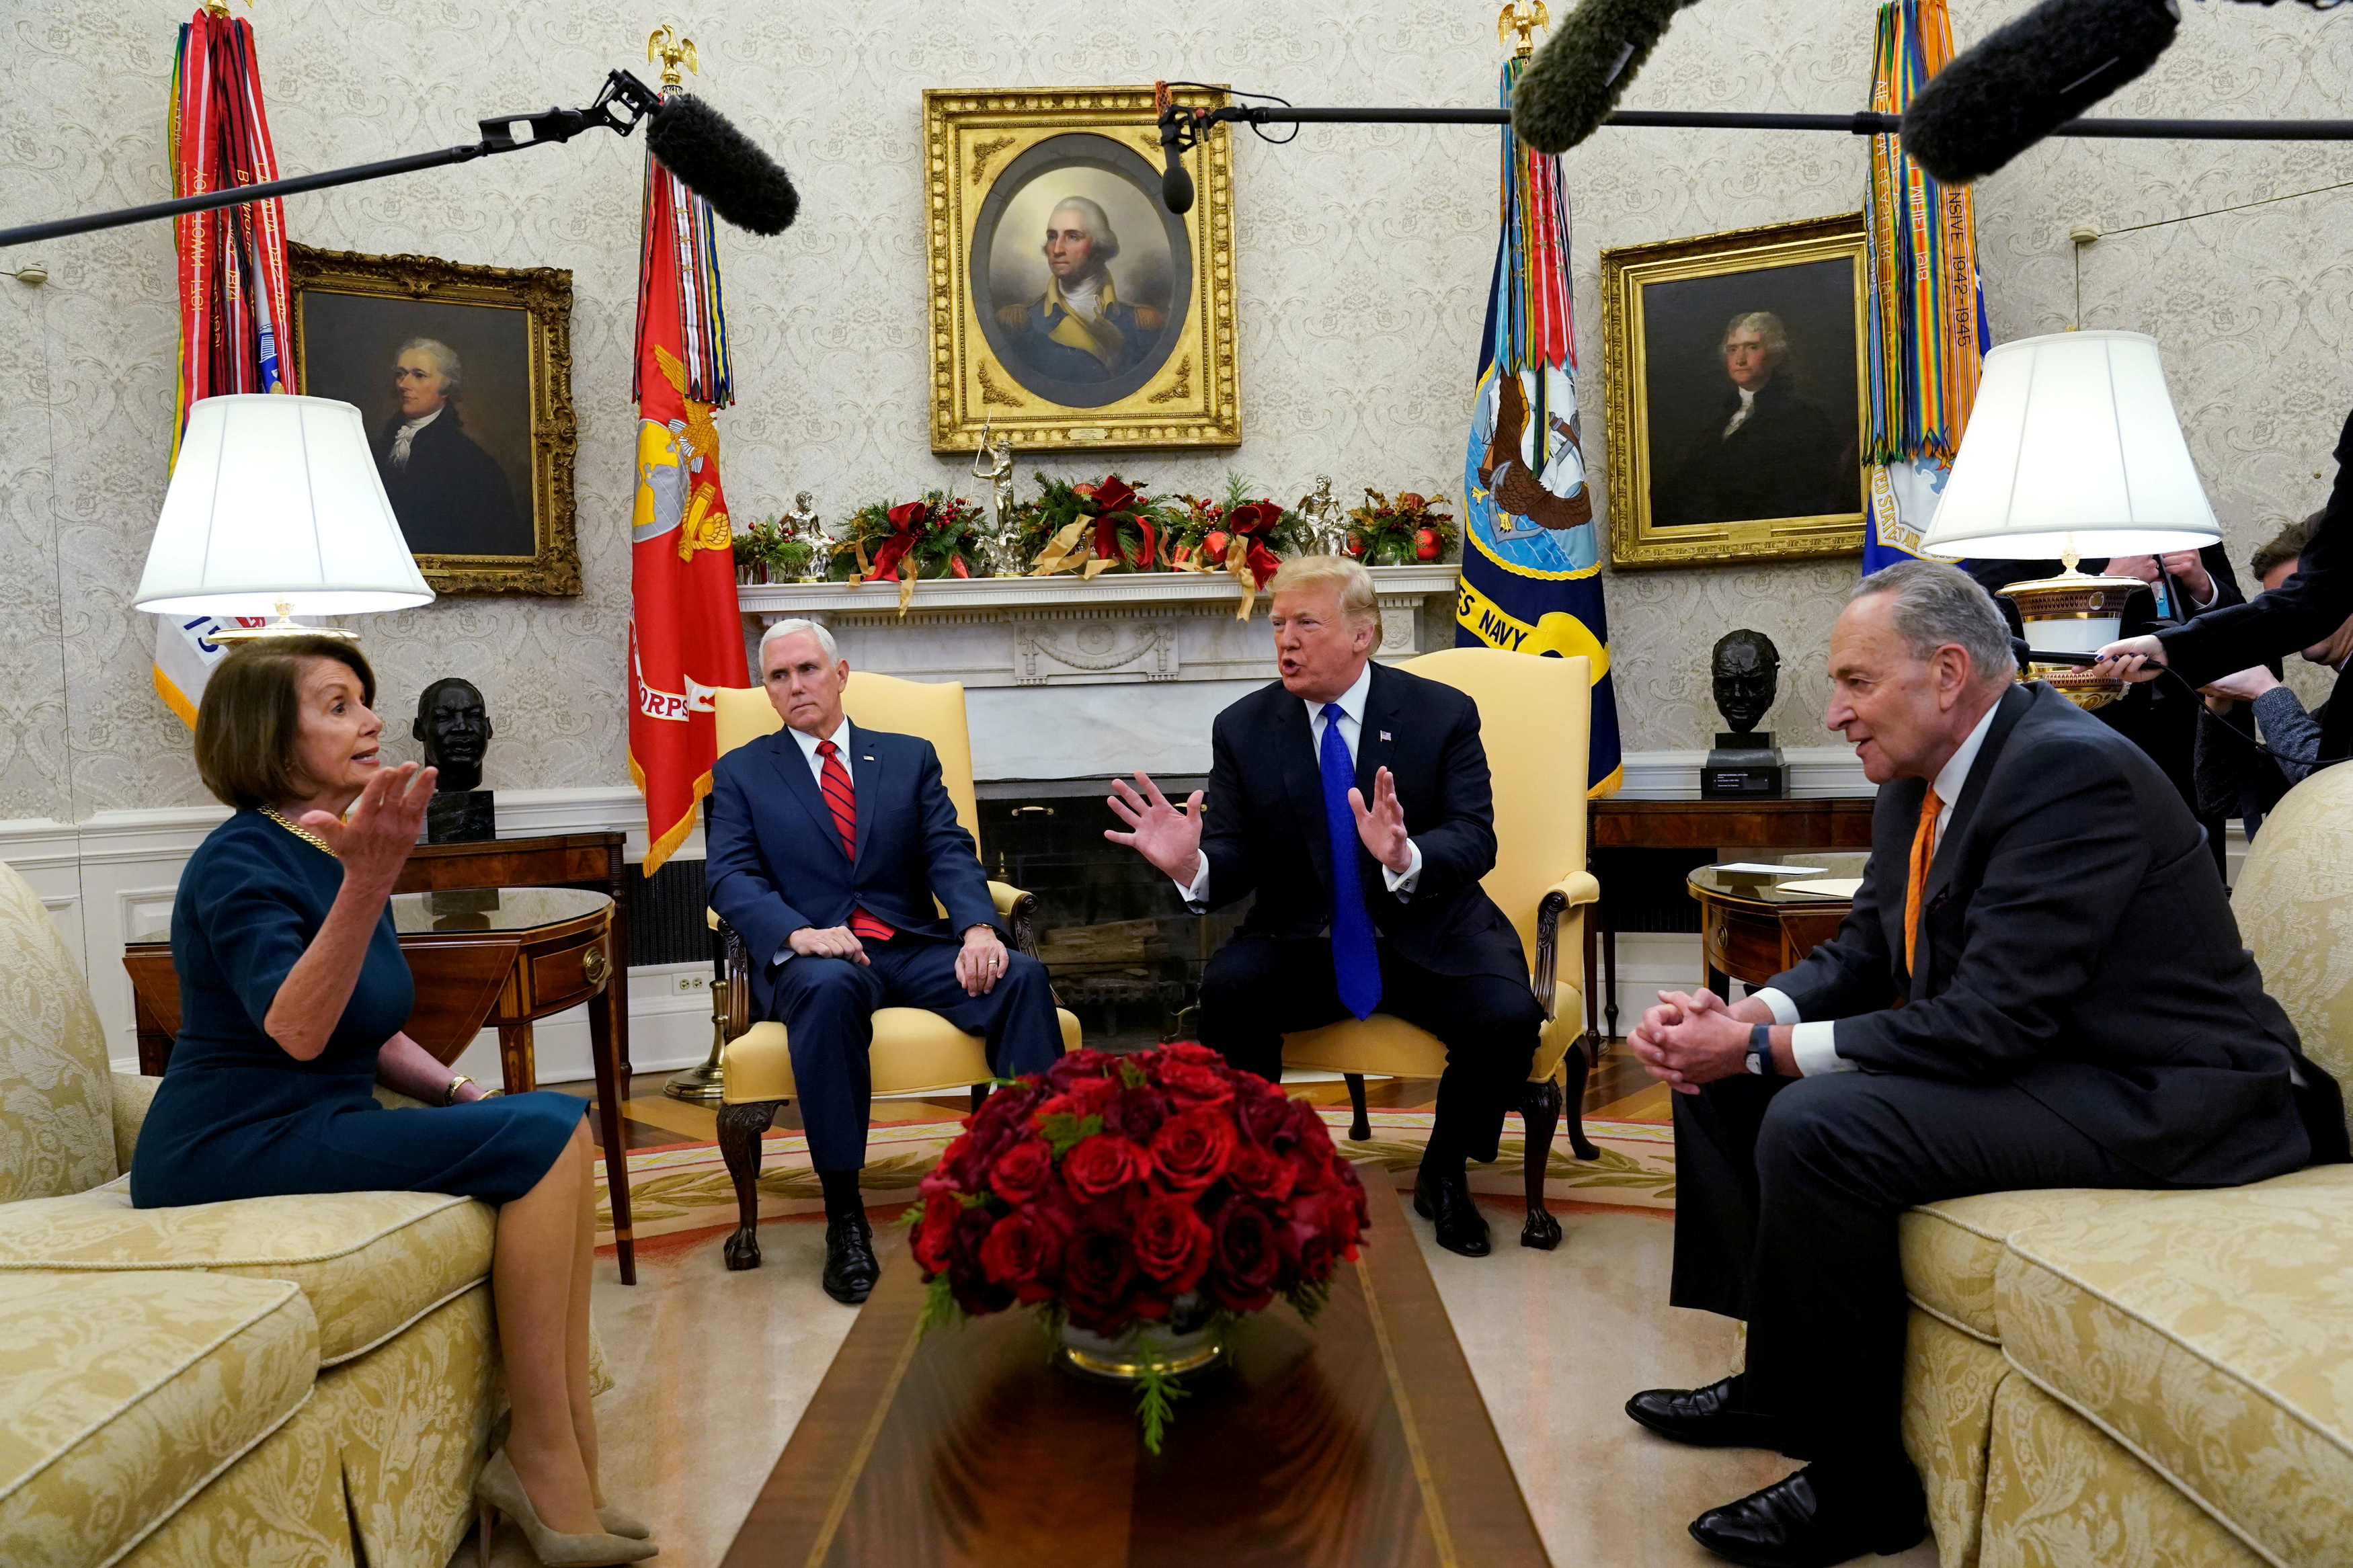 President Donald Trump speaks next to VP Mike Pence while meeting with Senate Democratic Leader Chuck Schumer and House Democratic Leader Nancy Pelosi at the White House. REUTERS/Kevin Lamarque